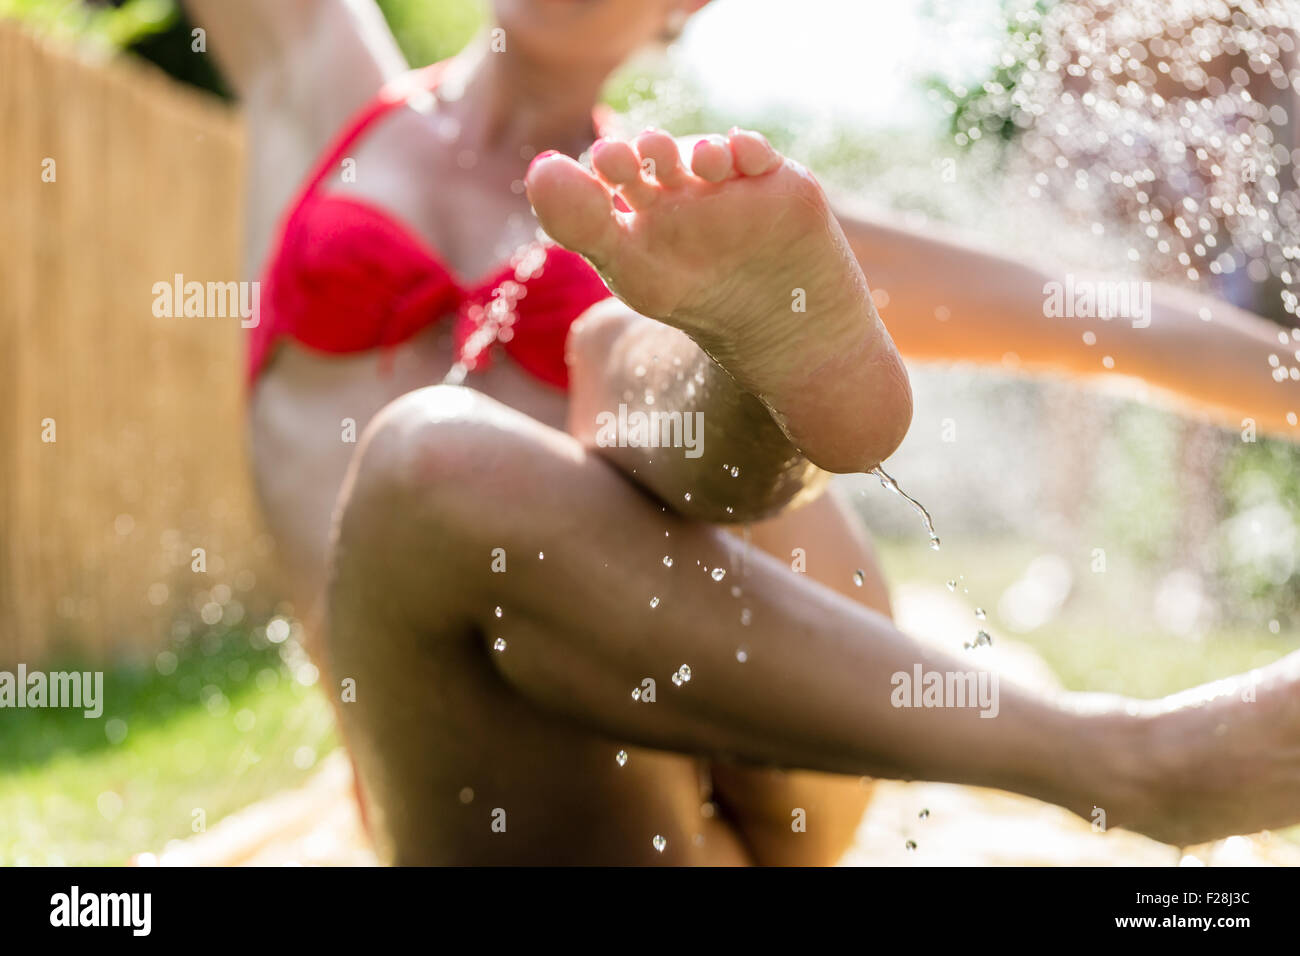 woman cooling down in garden with sprinkler splashing water drops around - Stock Image